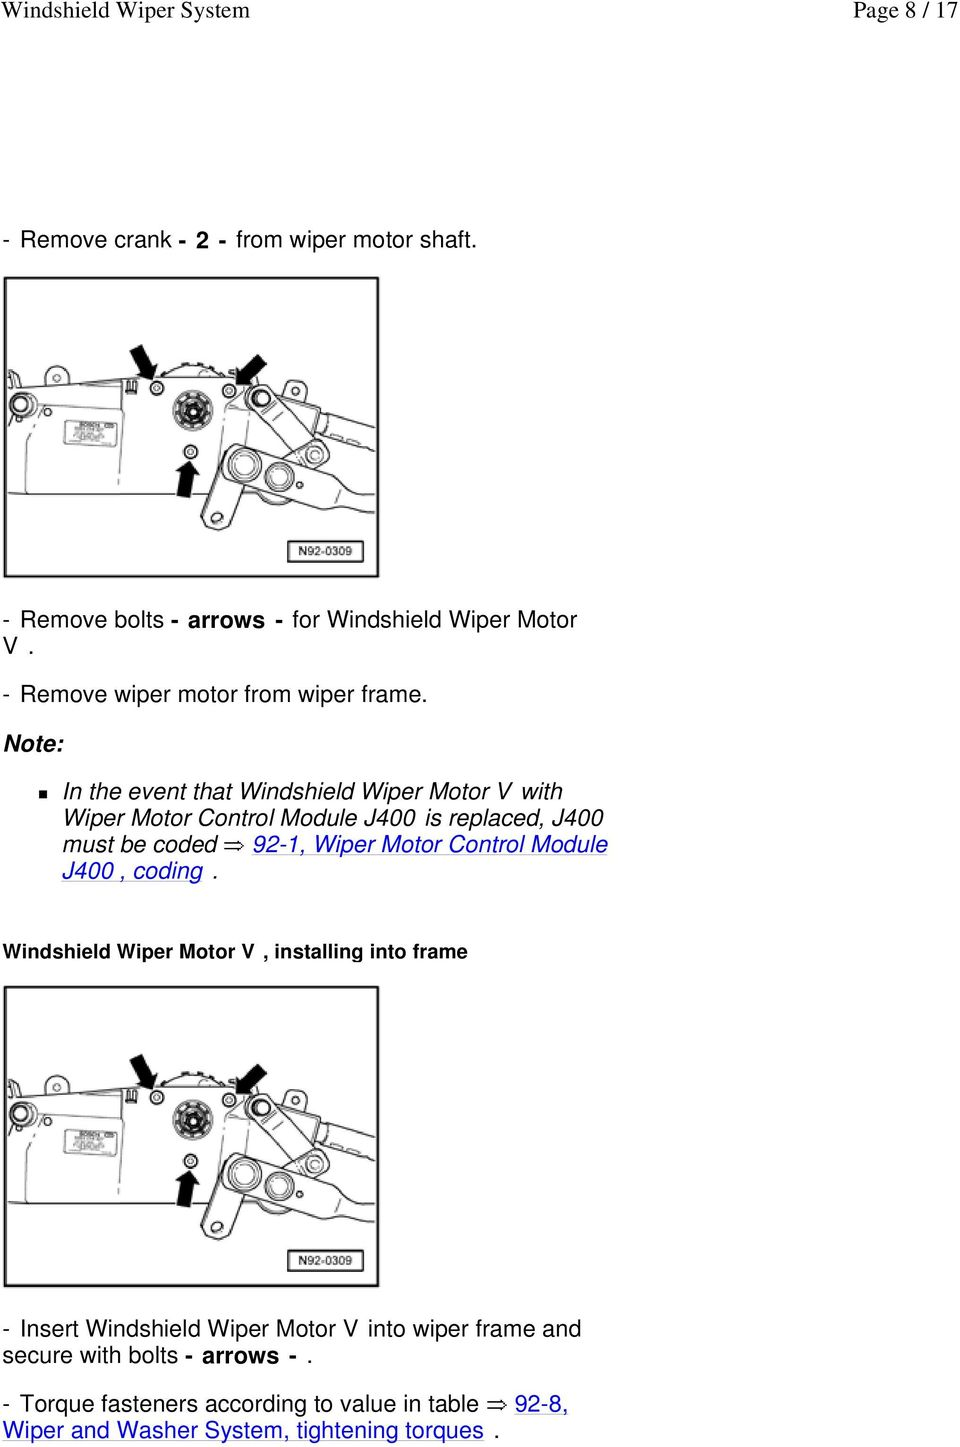 Windshield Wiper System Pdf 1992 Corvette Motor Wiring Diagram In The Event That V With Control Module J400 Is Replaced